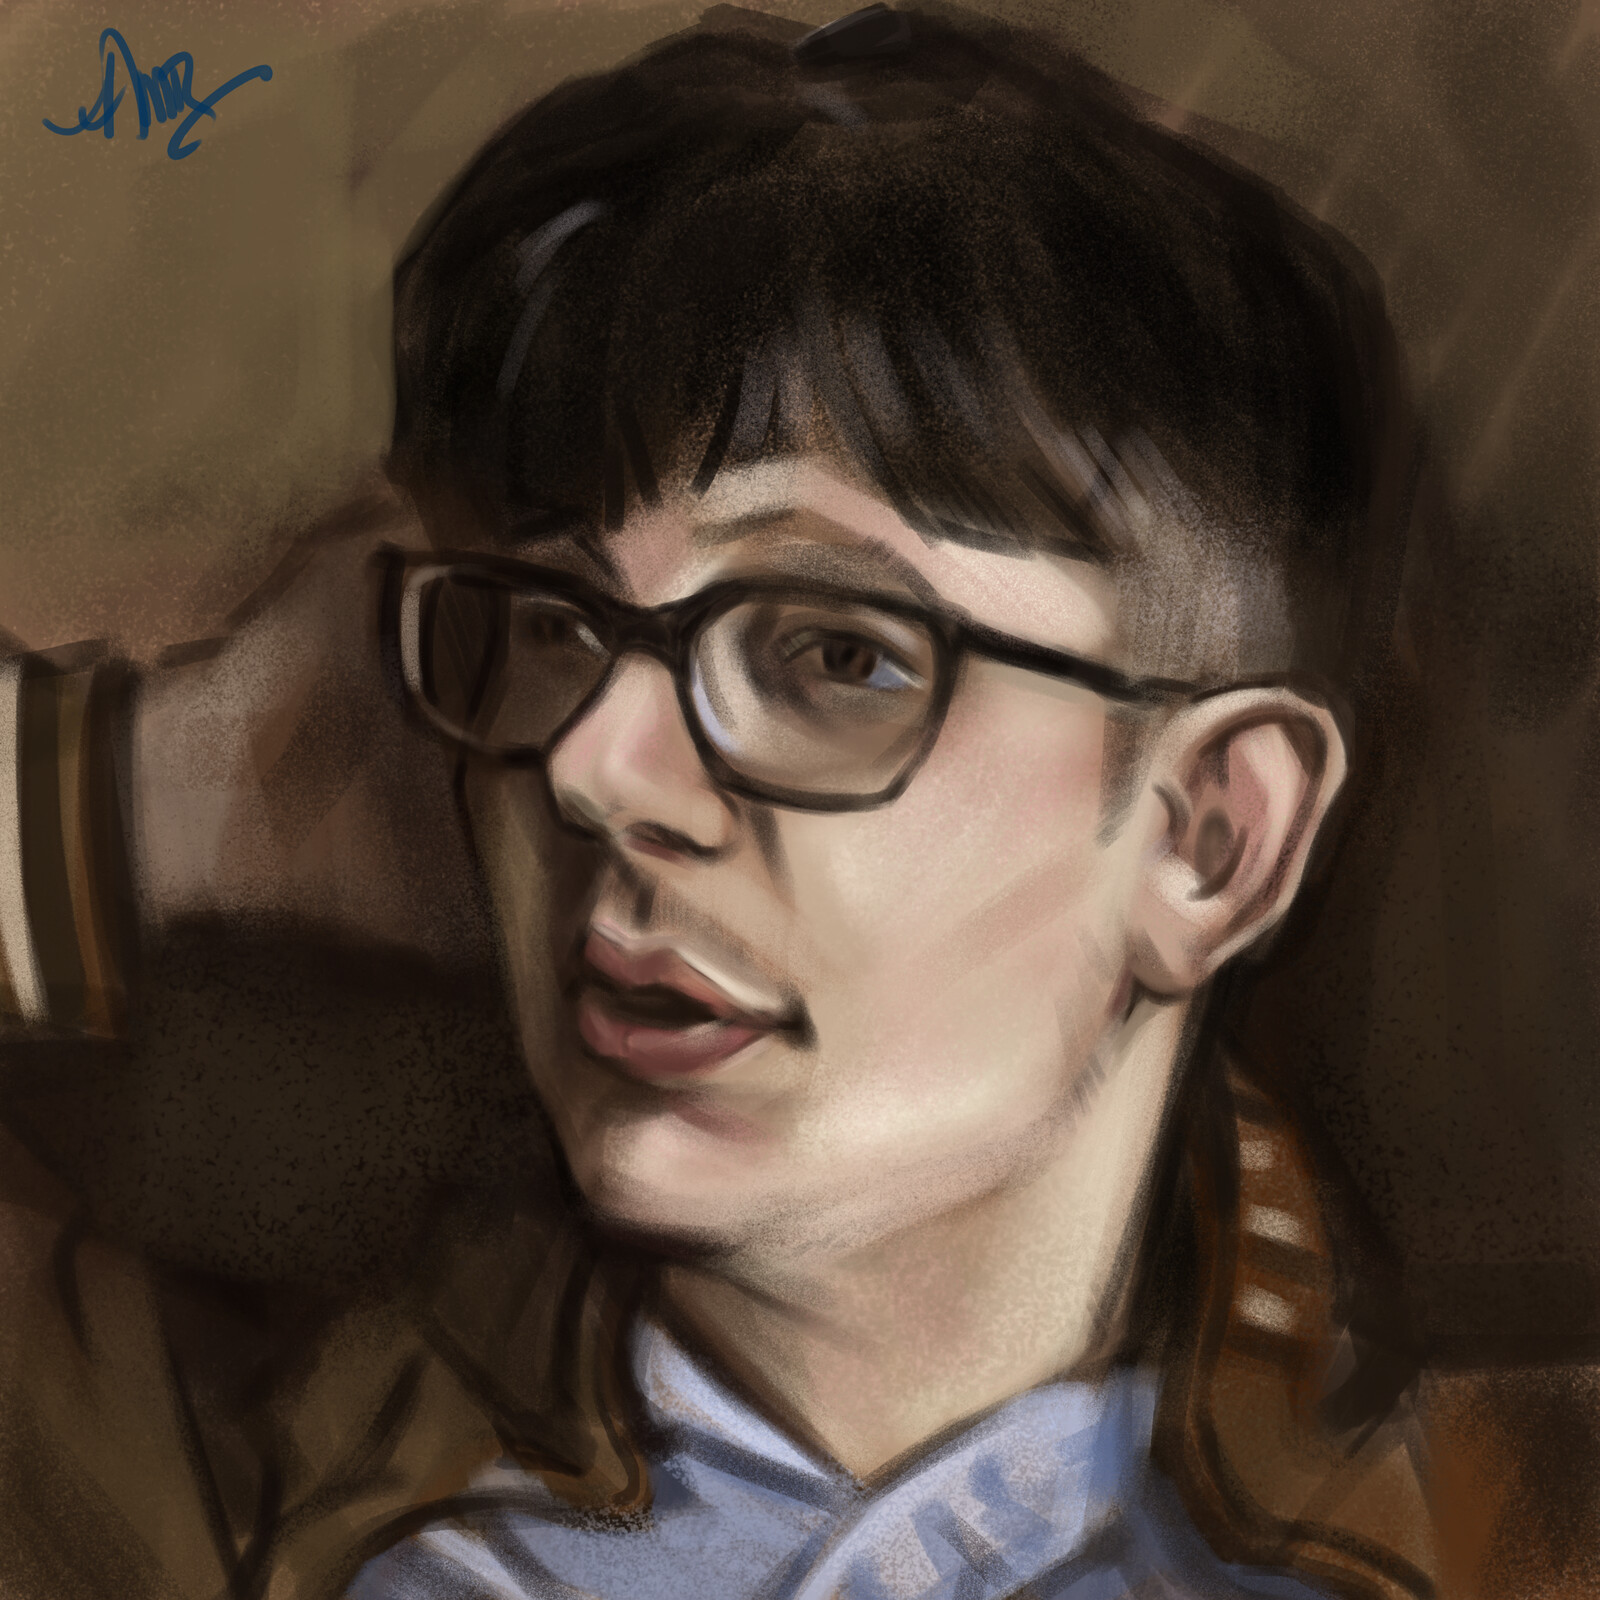 Portrait Study - 1 hour / Digital